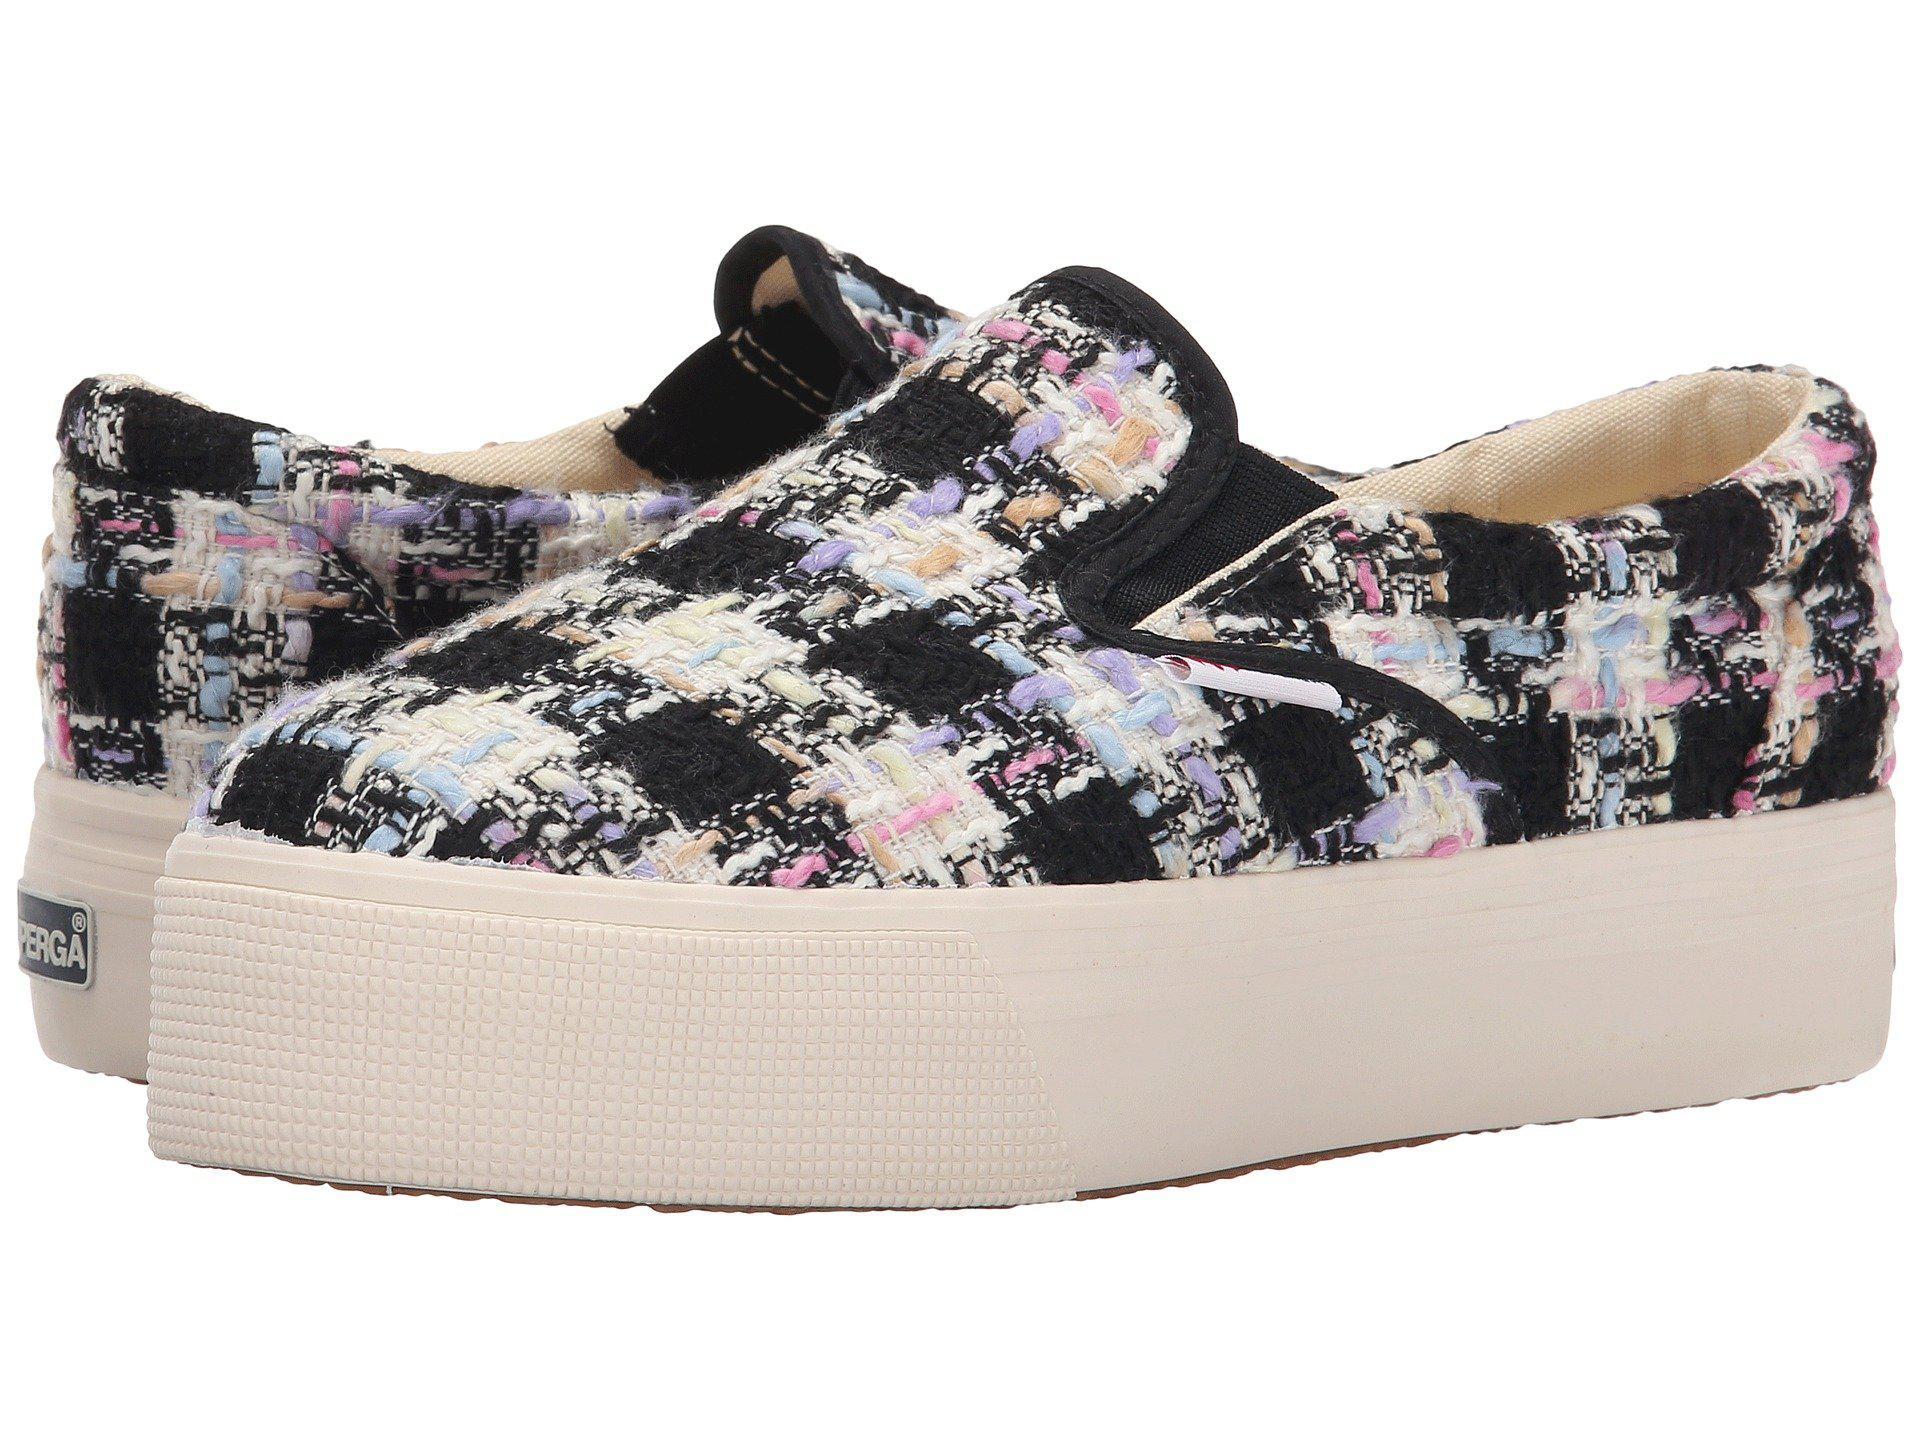 Womens Shoes Superga 2314 Boucle Pink Multi